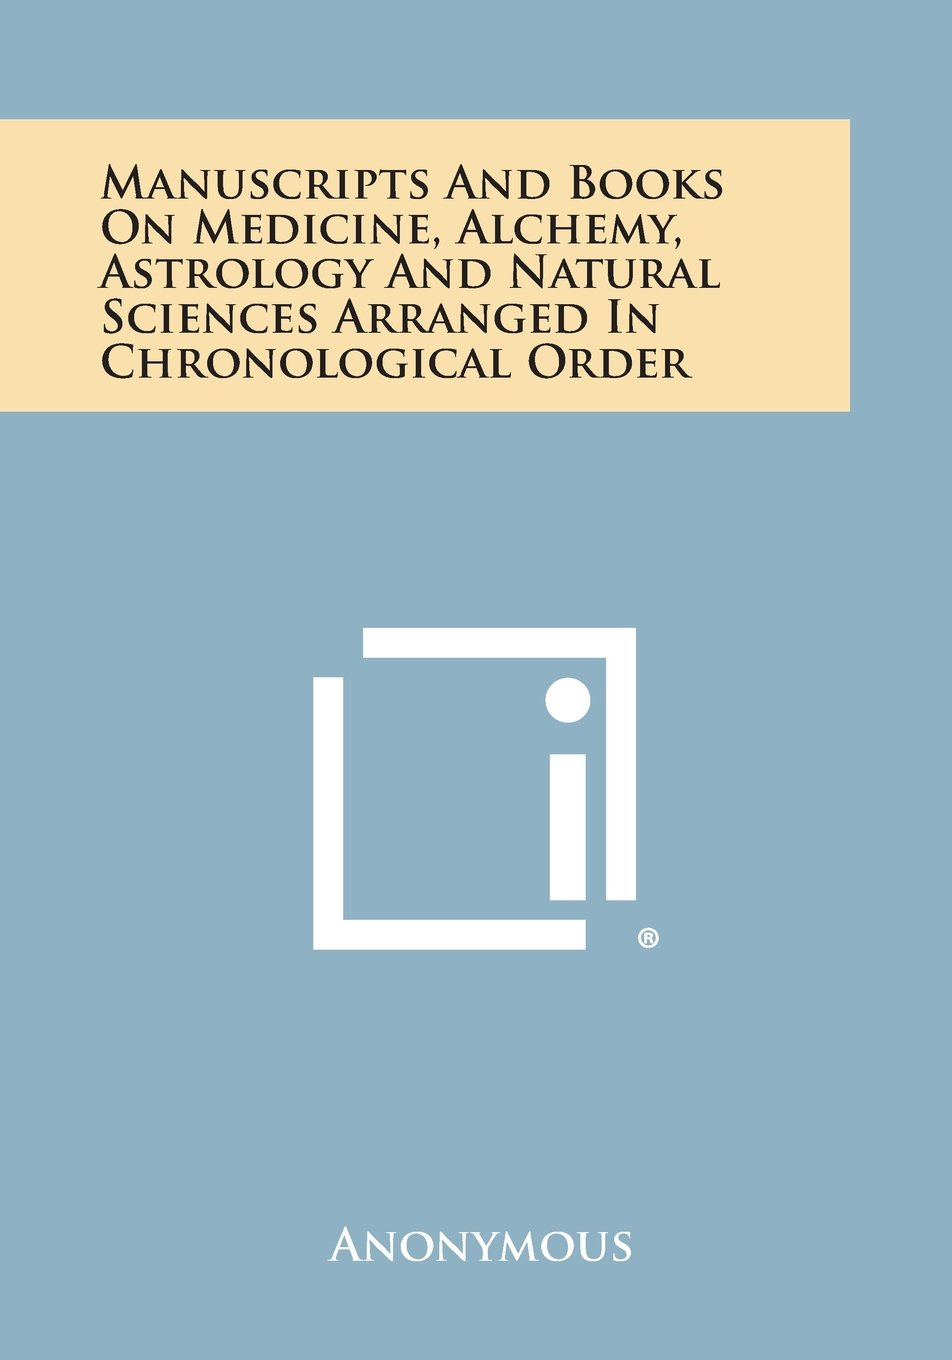 Read Online Manuscripts and Books on Medicine, Alchemy, Astrology and Natural Sciences Arranged in Chronological Order PDF